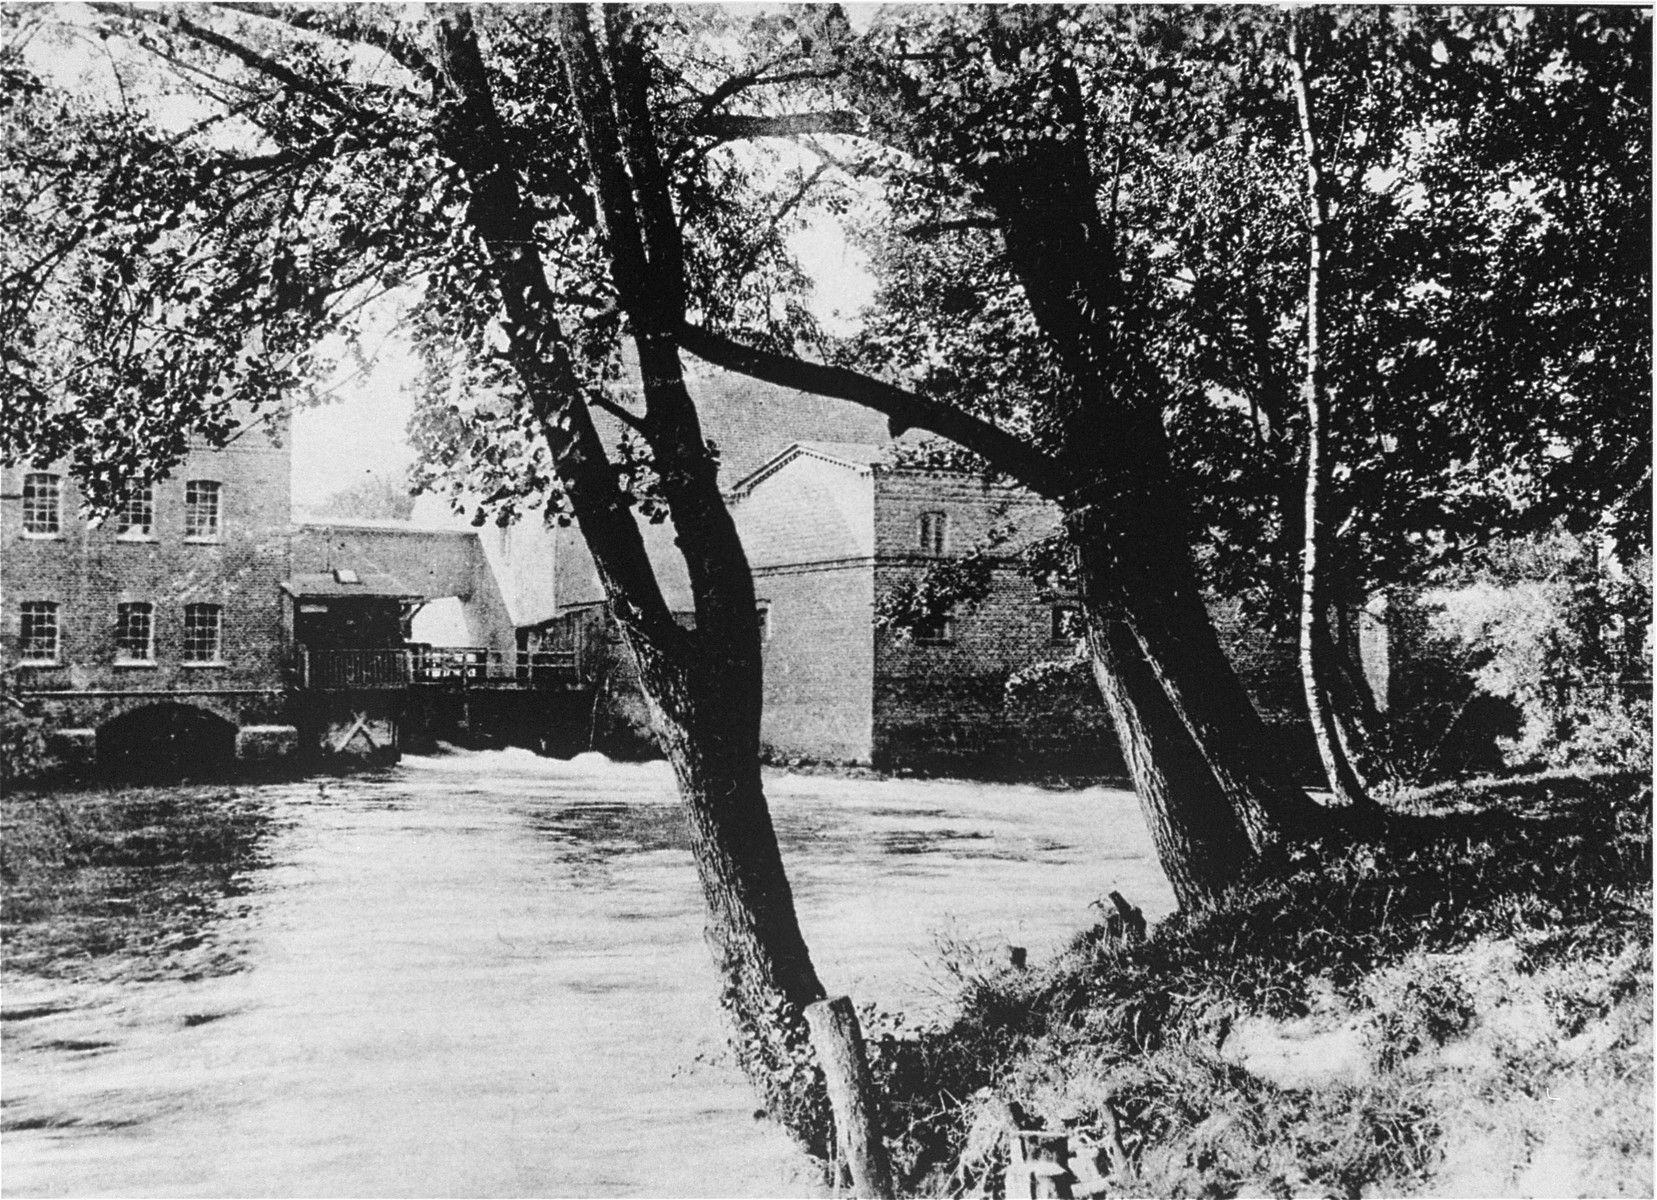 View of the Schlawer Muhlenwerke, a mill owned and operated by Hugo Gottschalk.    The mill was founded in 1872 by Benno Gottschalk (1834-1902).  His son, Hugo, took over the mill after his death.  The mill remained in the hands of the Gottschalk family until 1923, when it was sold to the city of Schlawe.